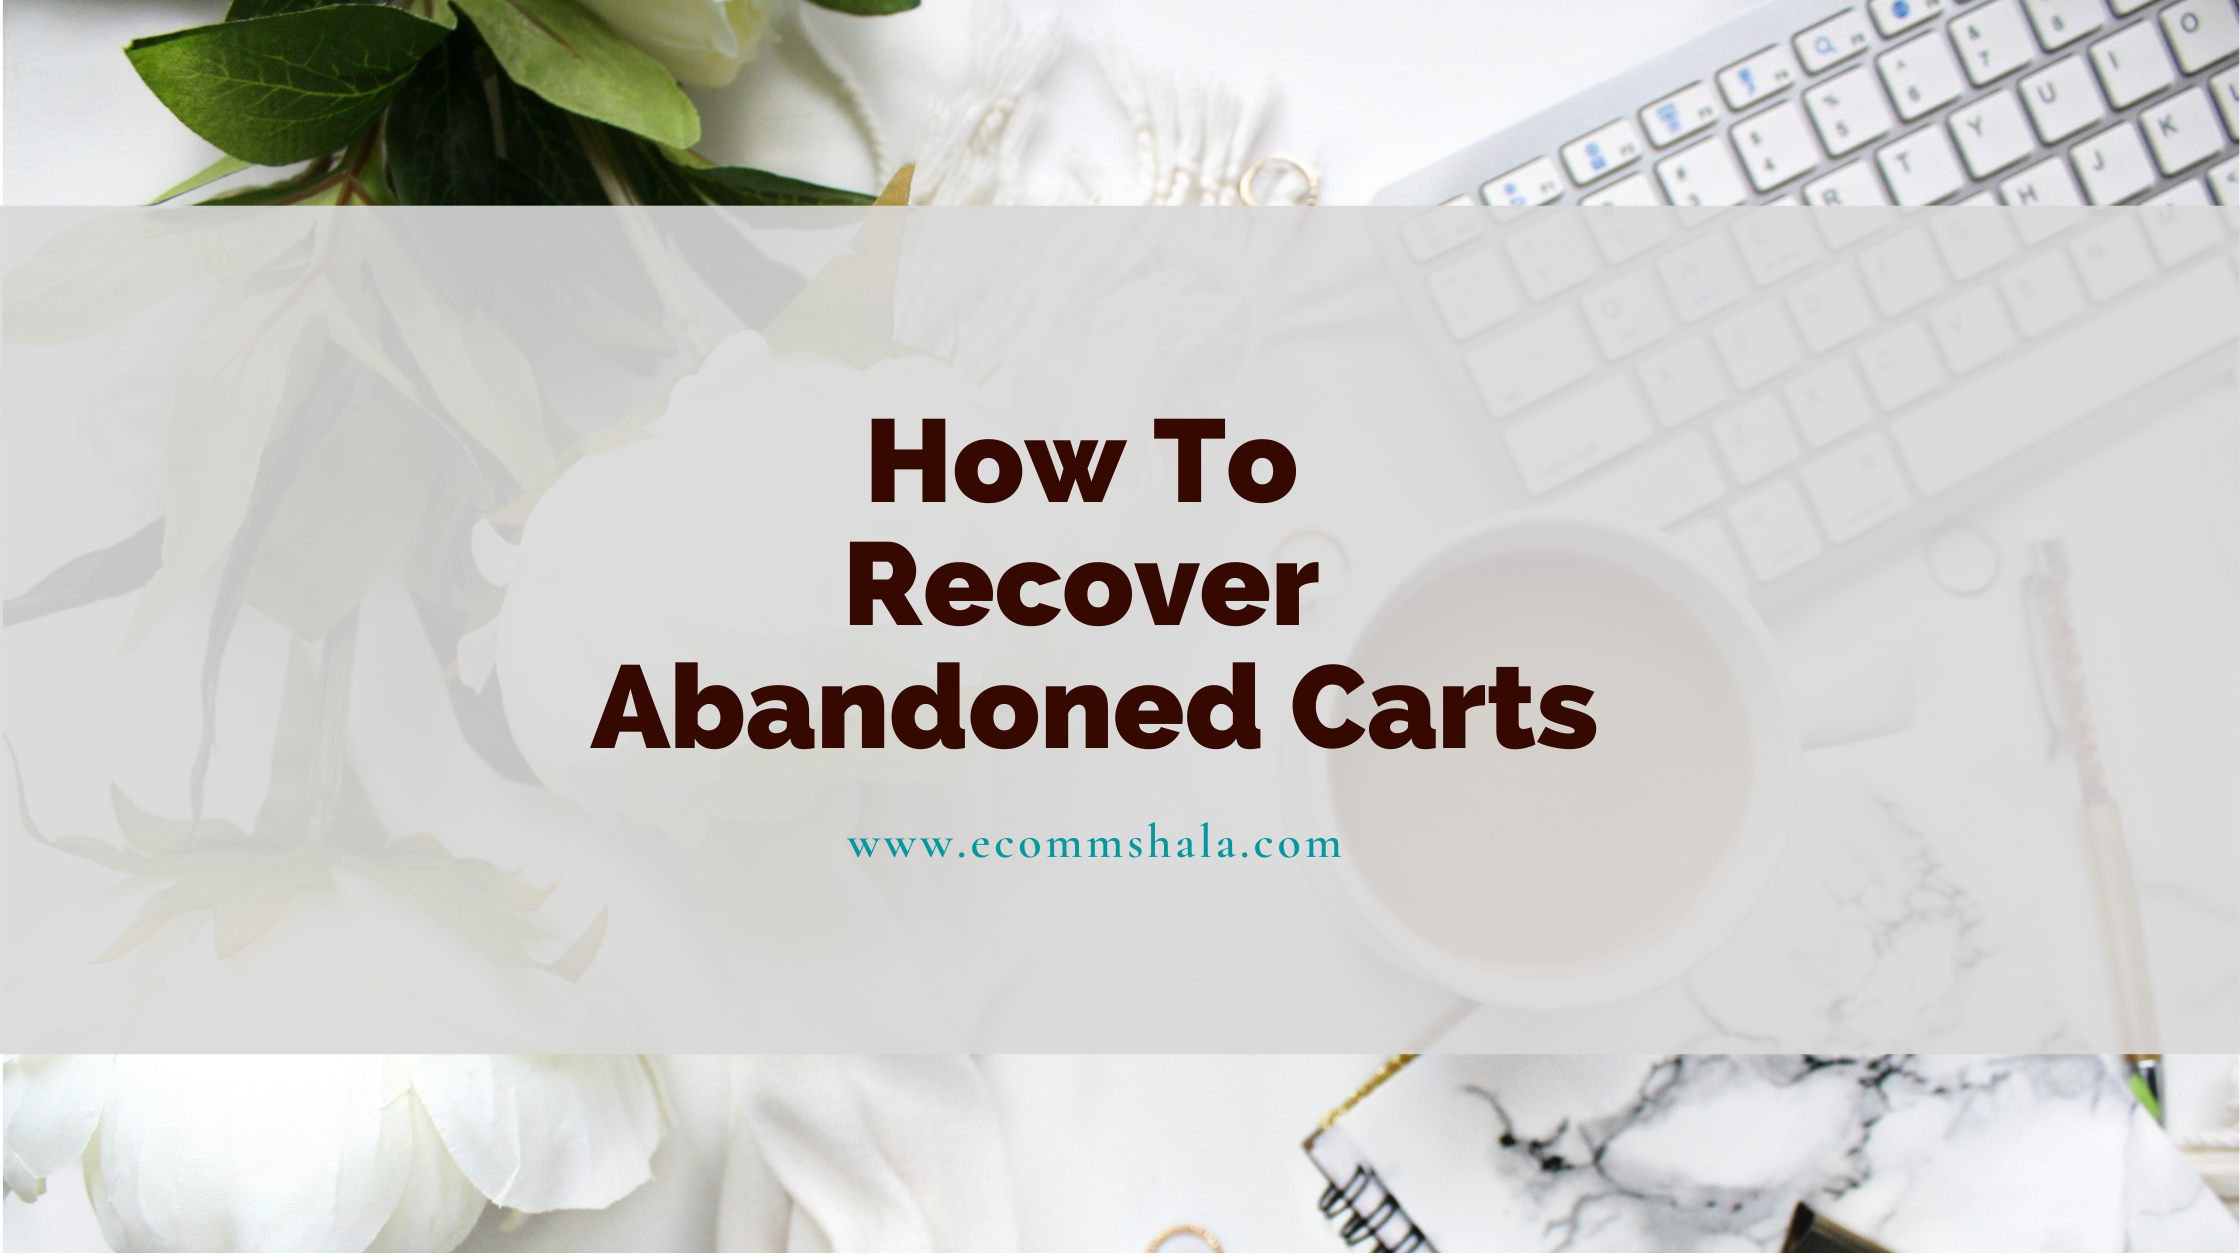 How To Recover Abandoned Carts